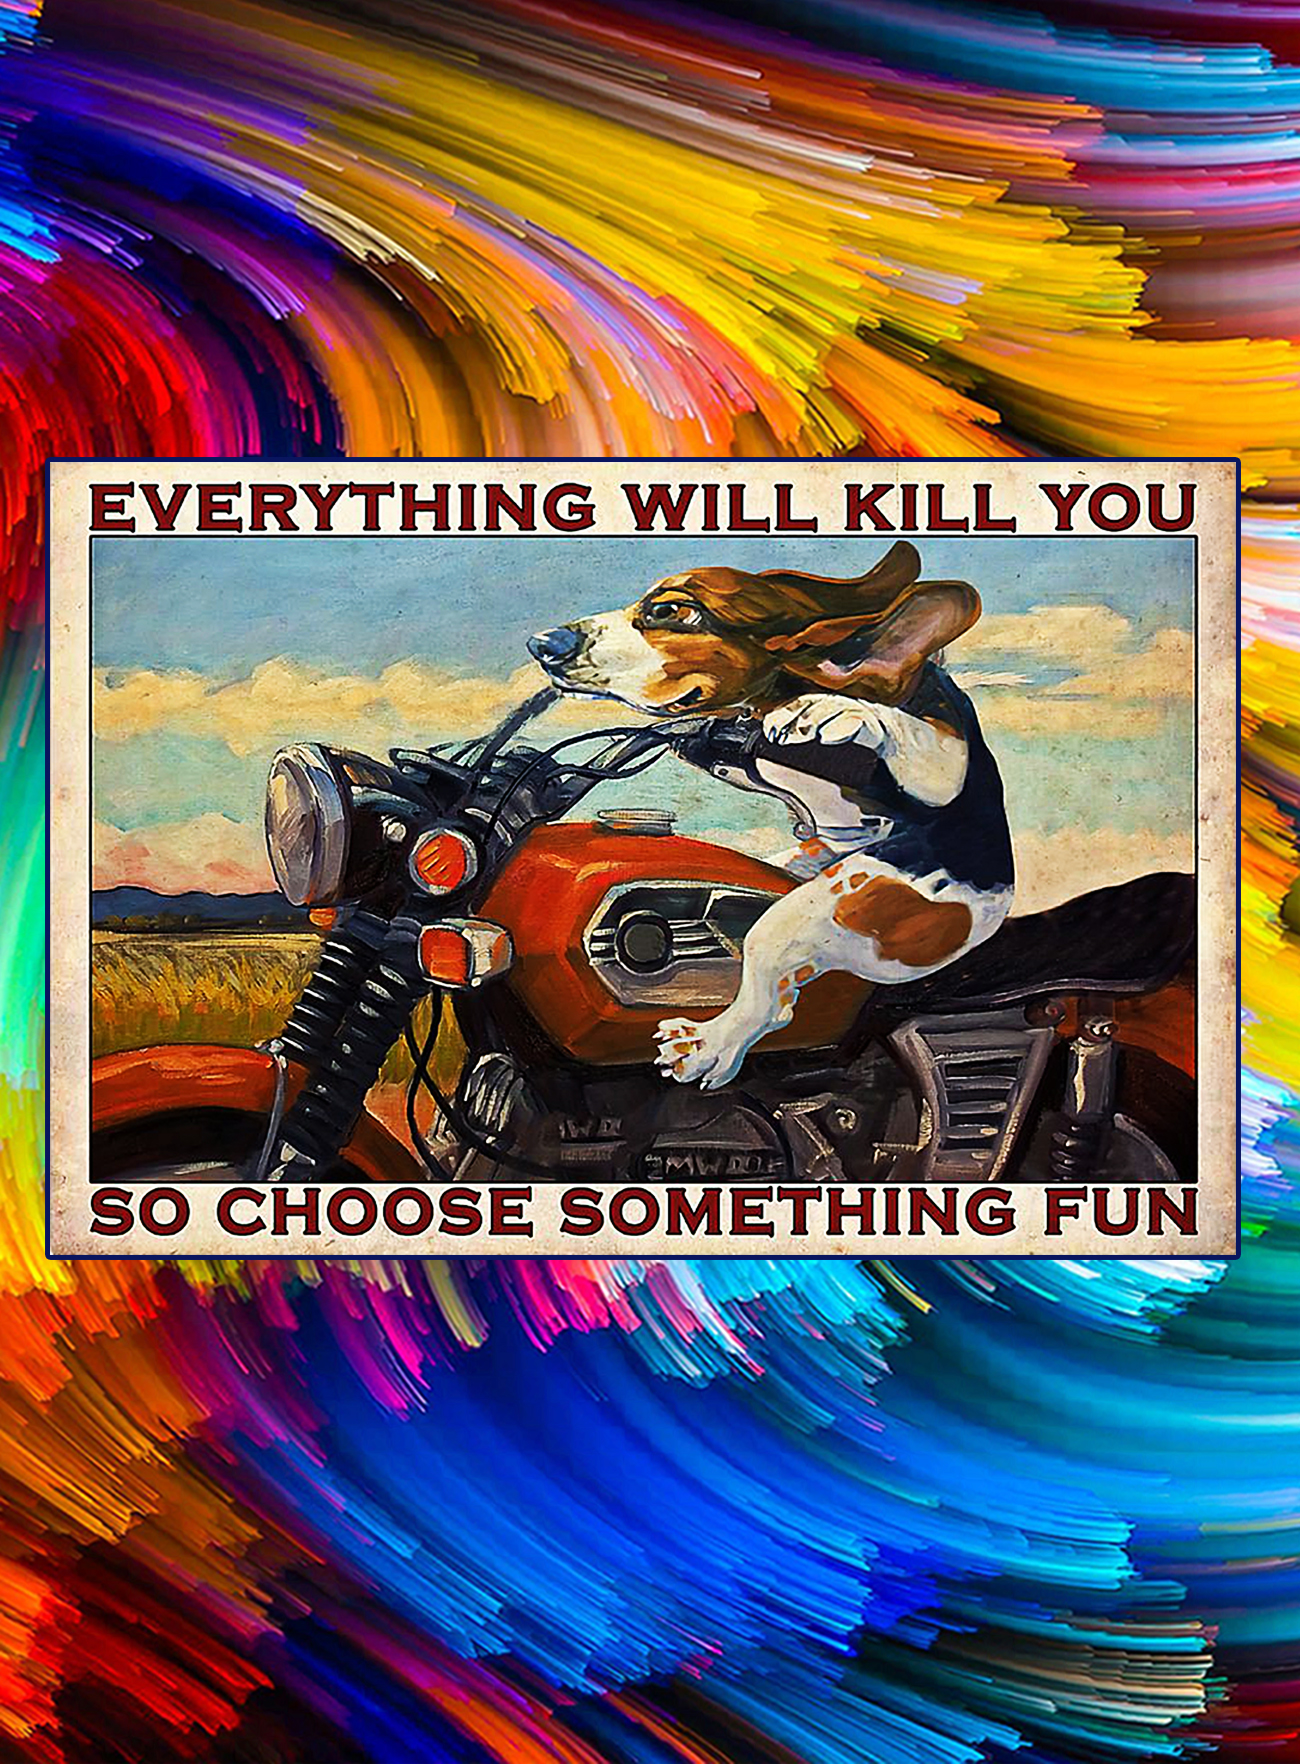 Motorcycle beagle everything will kill you so choose something fun poster - A4